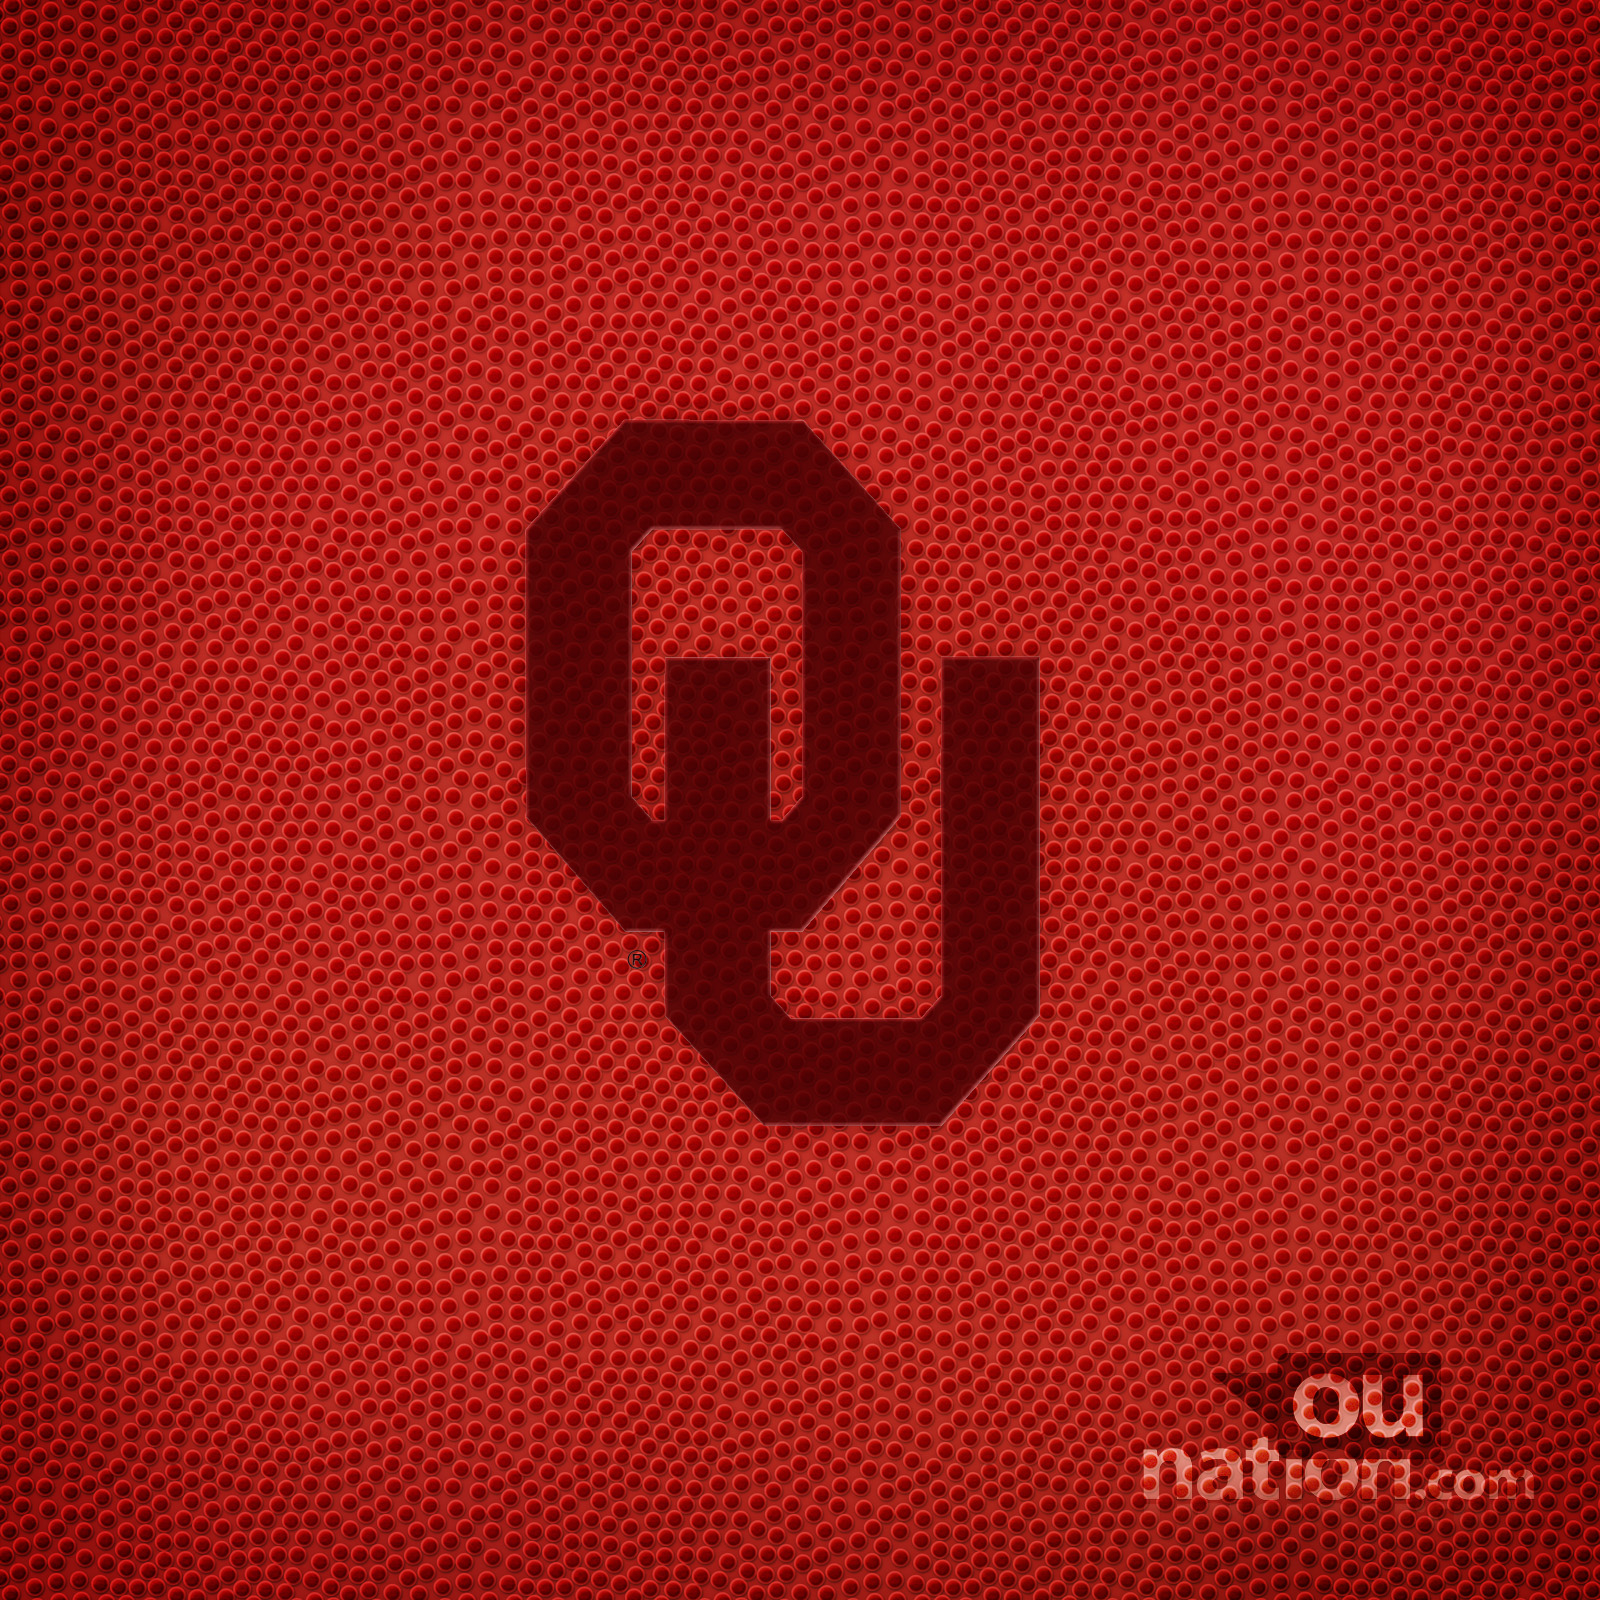 ou logo wallpapers football pigskin wallpaper 1600x1600